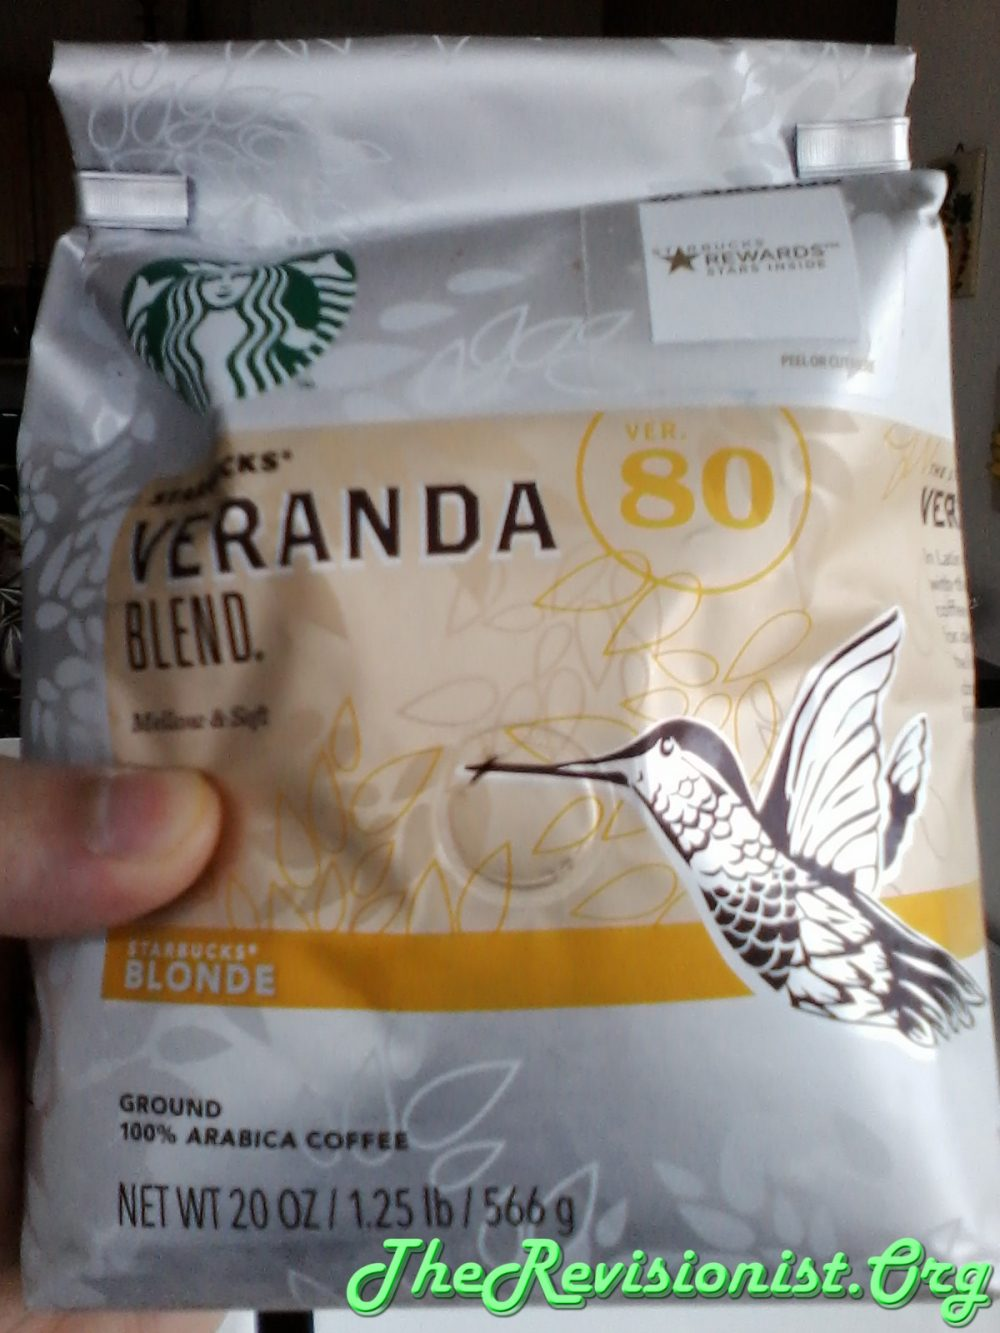 Review of Starbuck's Veranda Blend Blond Roast Coffee